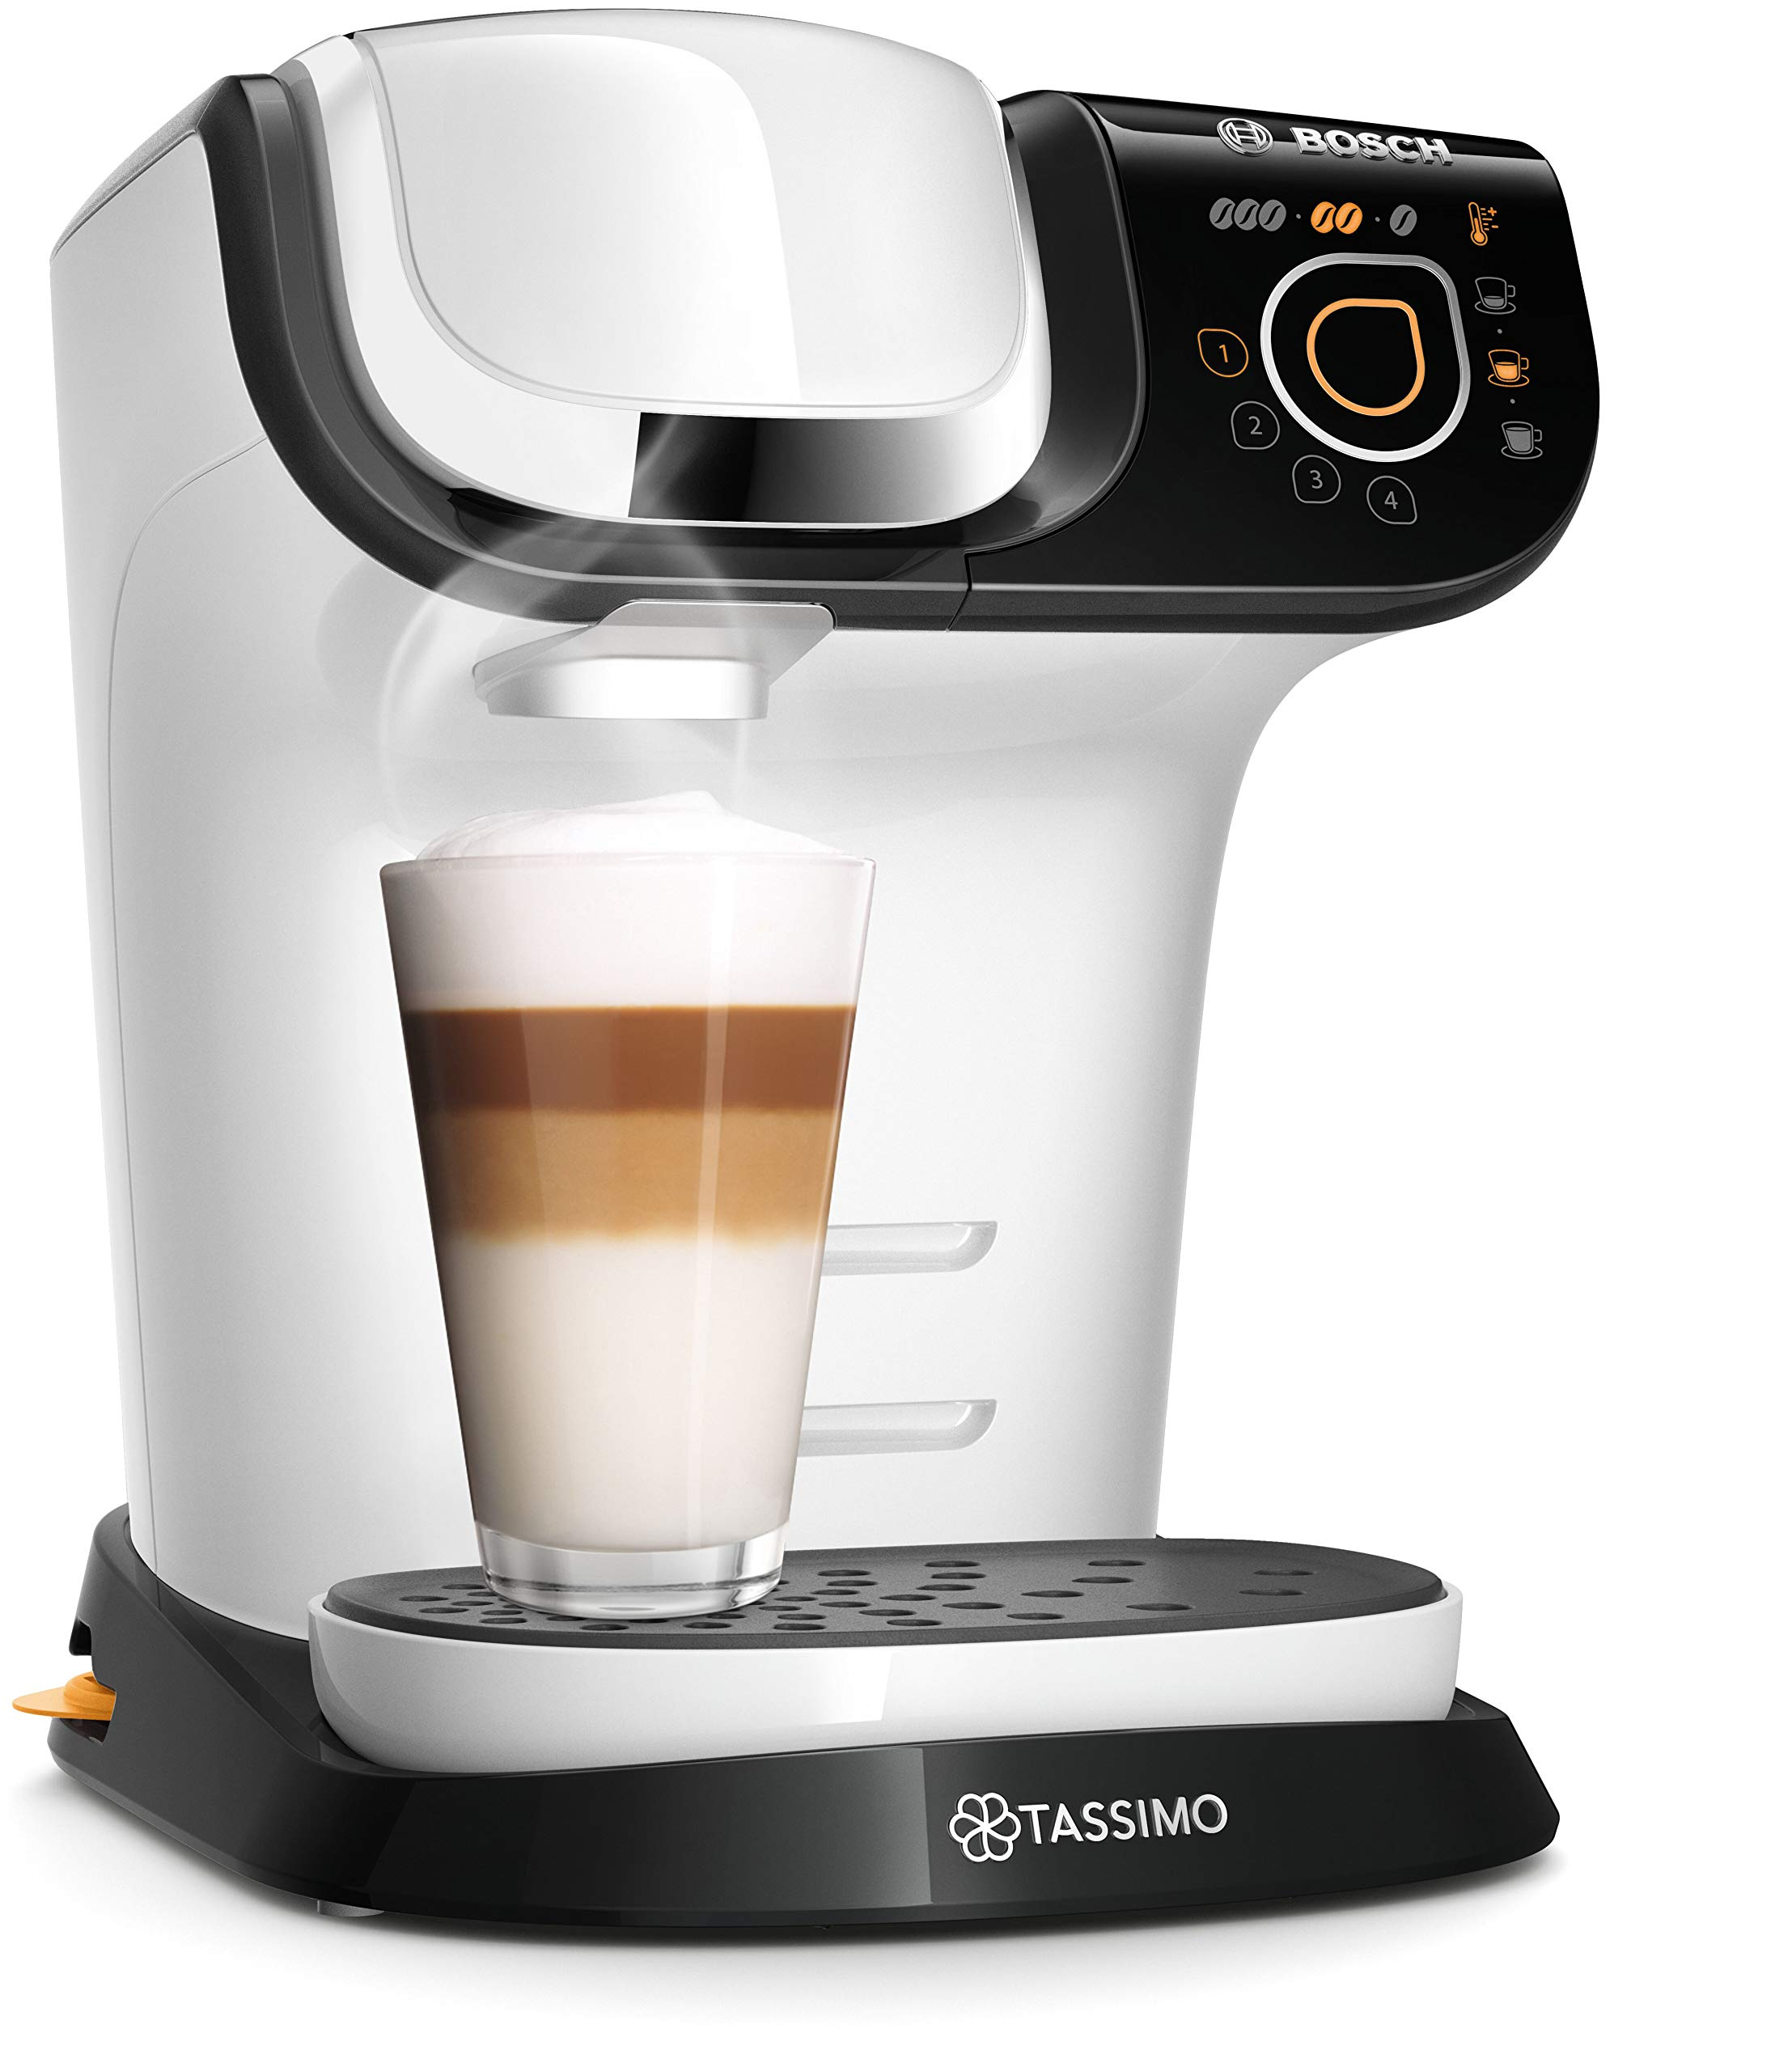 Bosch Home Tassimo My Way 2 TAS6502: Amazon.es: Electrónica